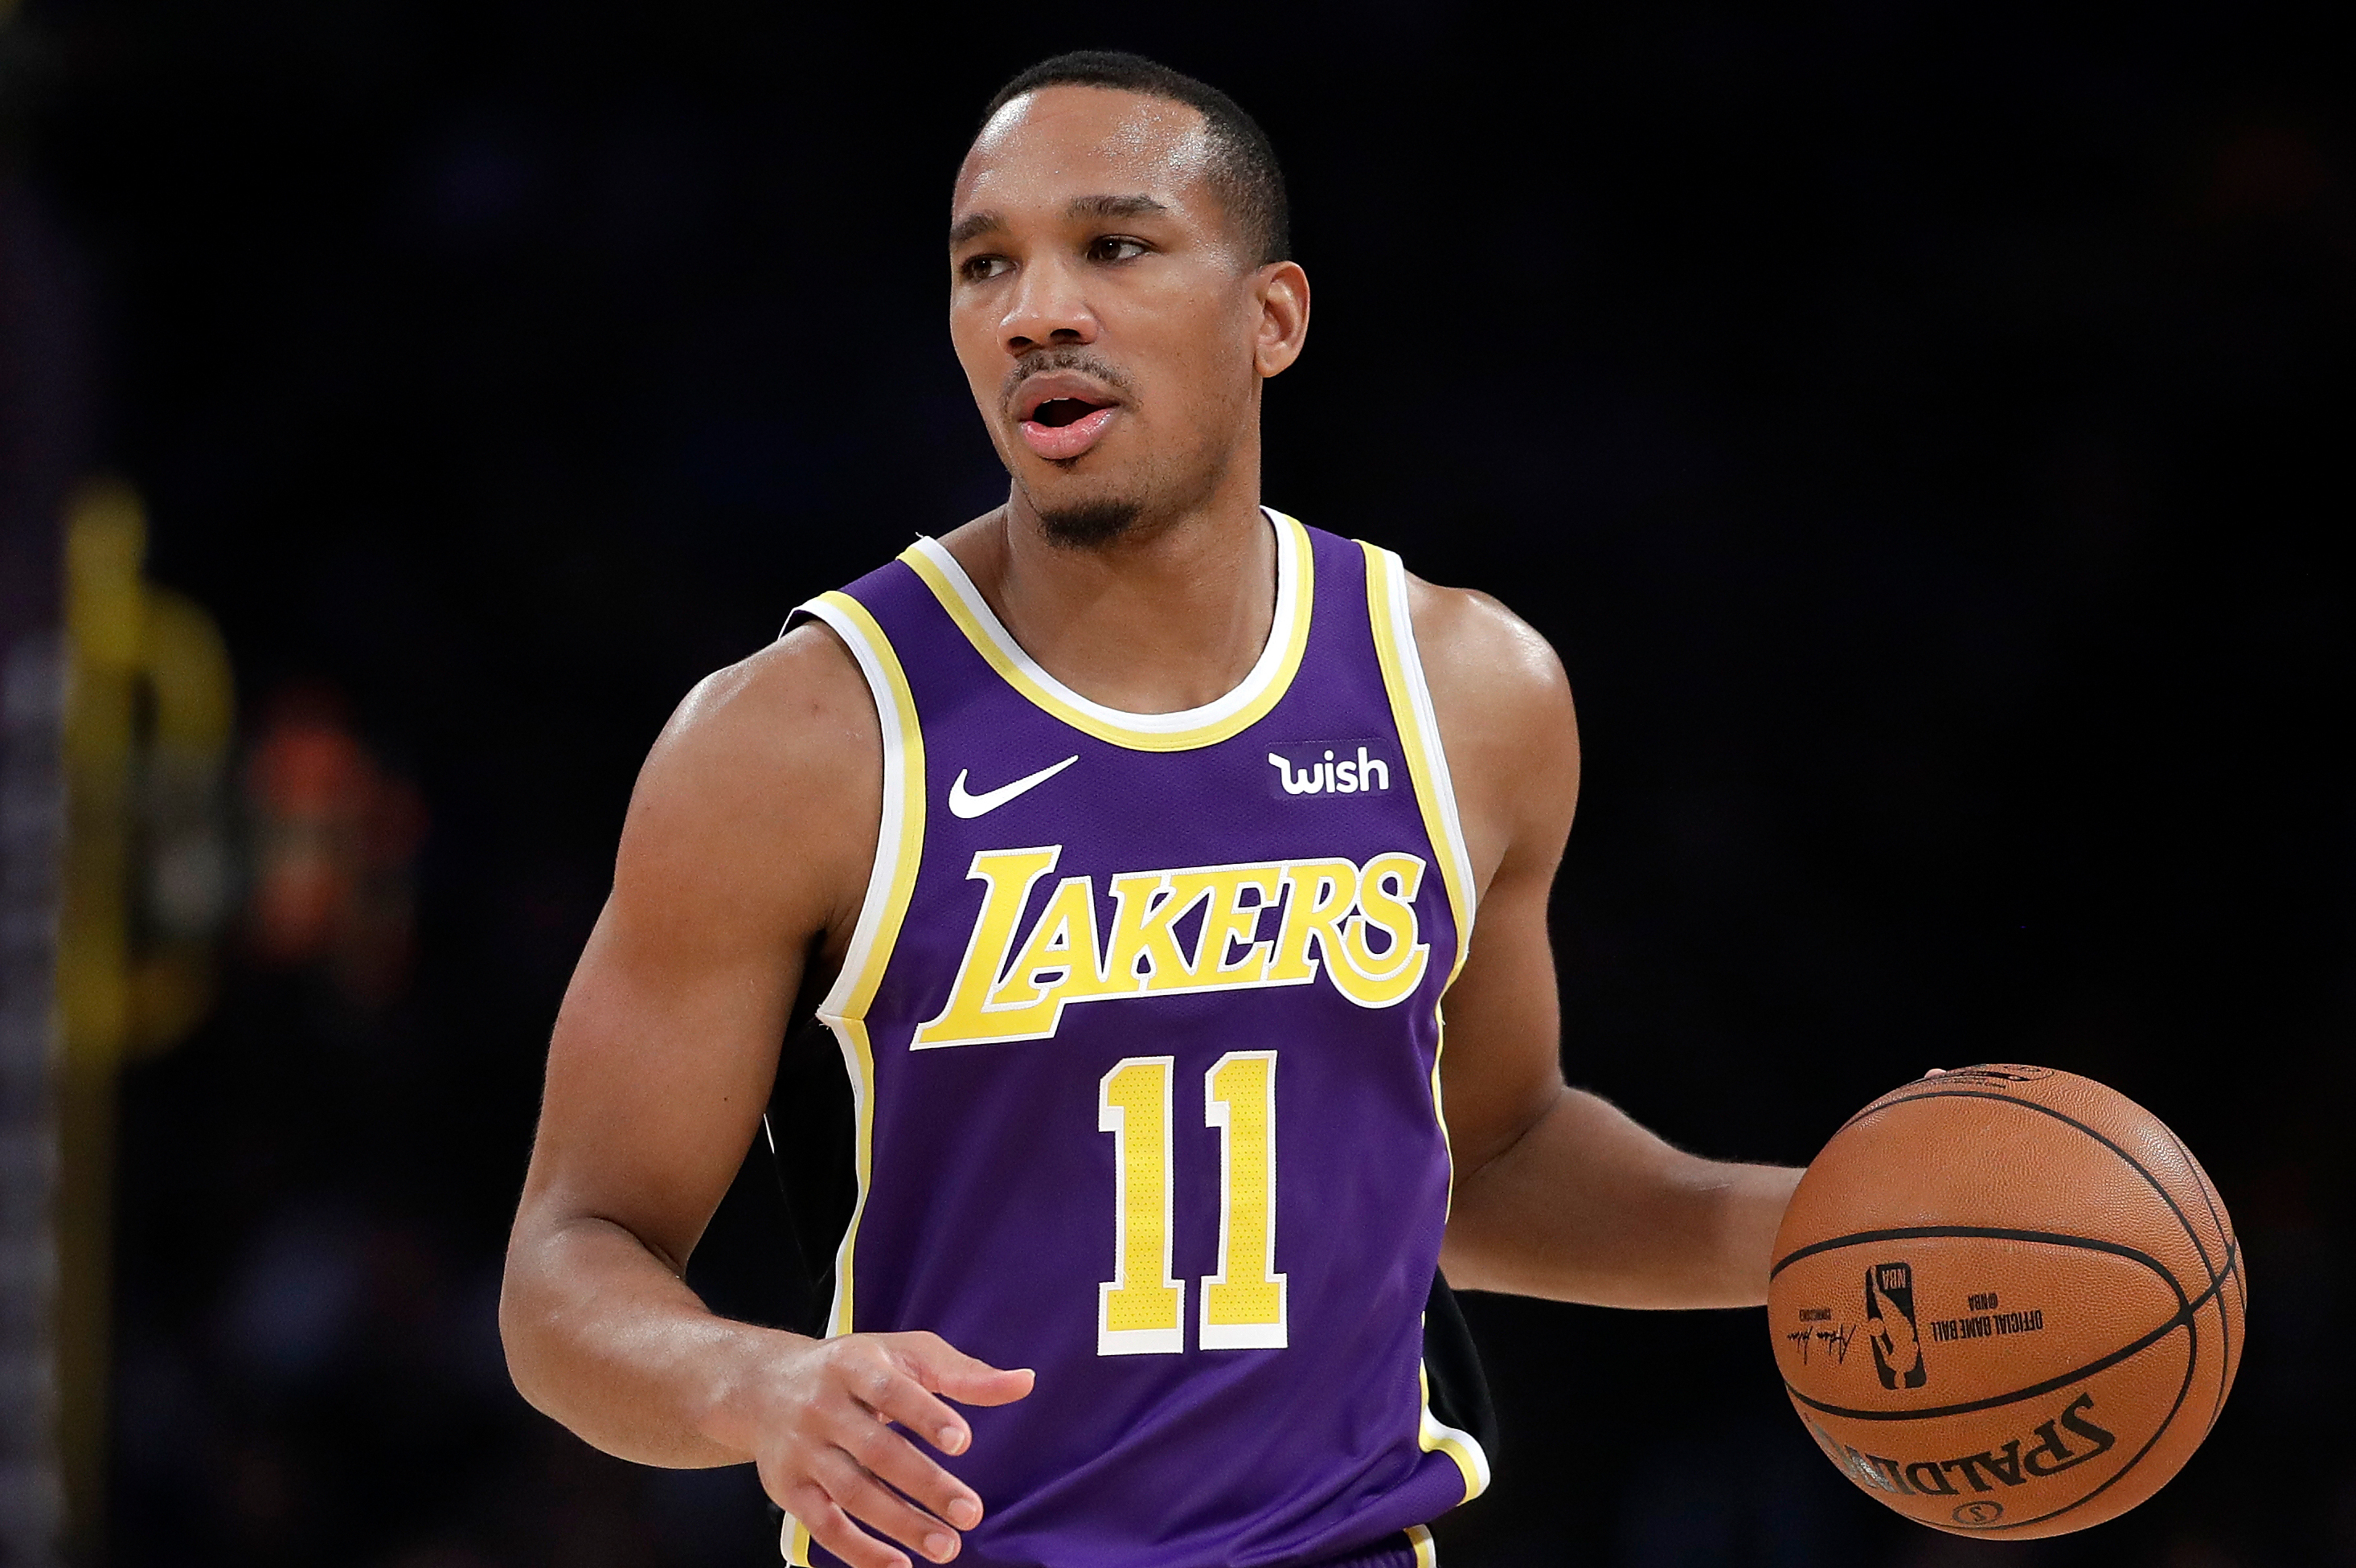 The 29-year old son of father (?) and mother(?) Avery Bradley in 2020 photo. Avery Bradley earned a million dollar salary - leaving the net worth at million in 2020